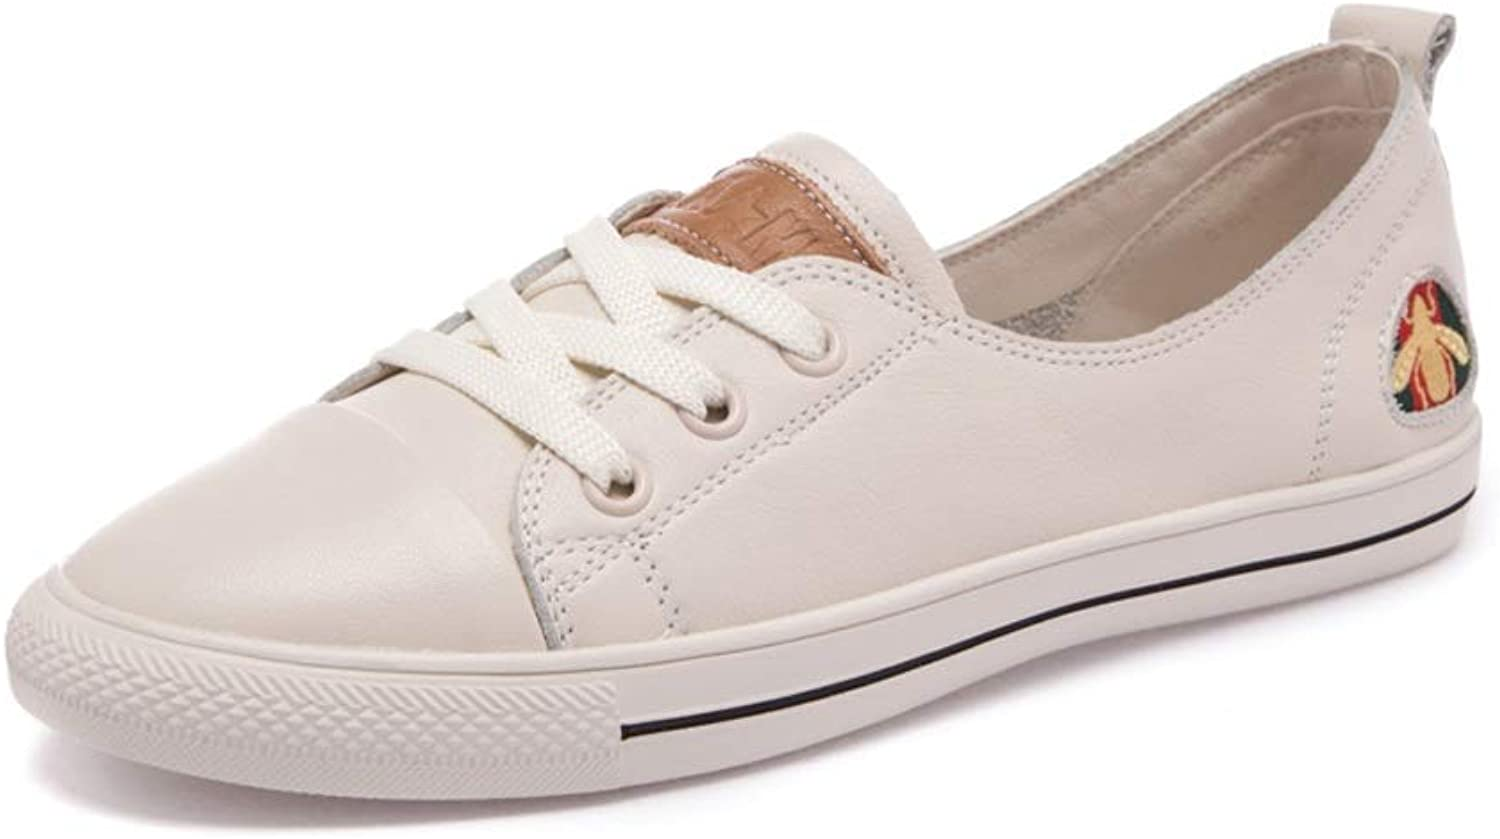 Ailj Canvas shoes, Women's Classic Low-top Sneakers Clean Court Up and Down Low-Top Sneakers 4 Colour (color   Beige, Size   37 EU)